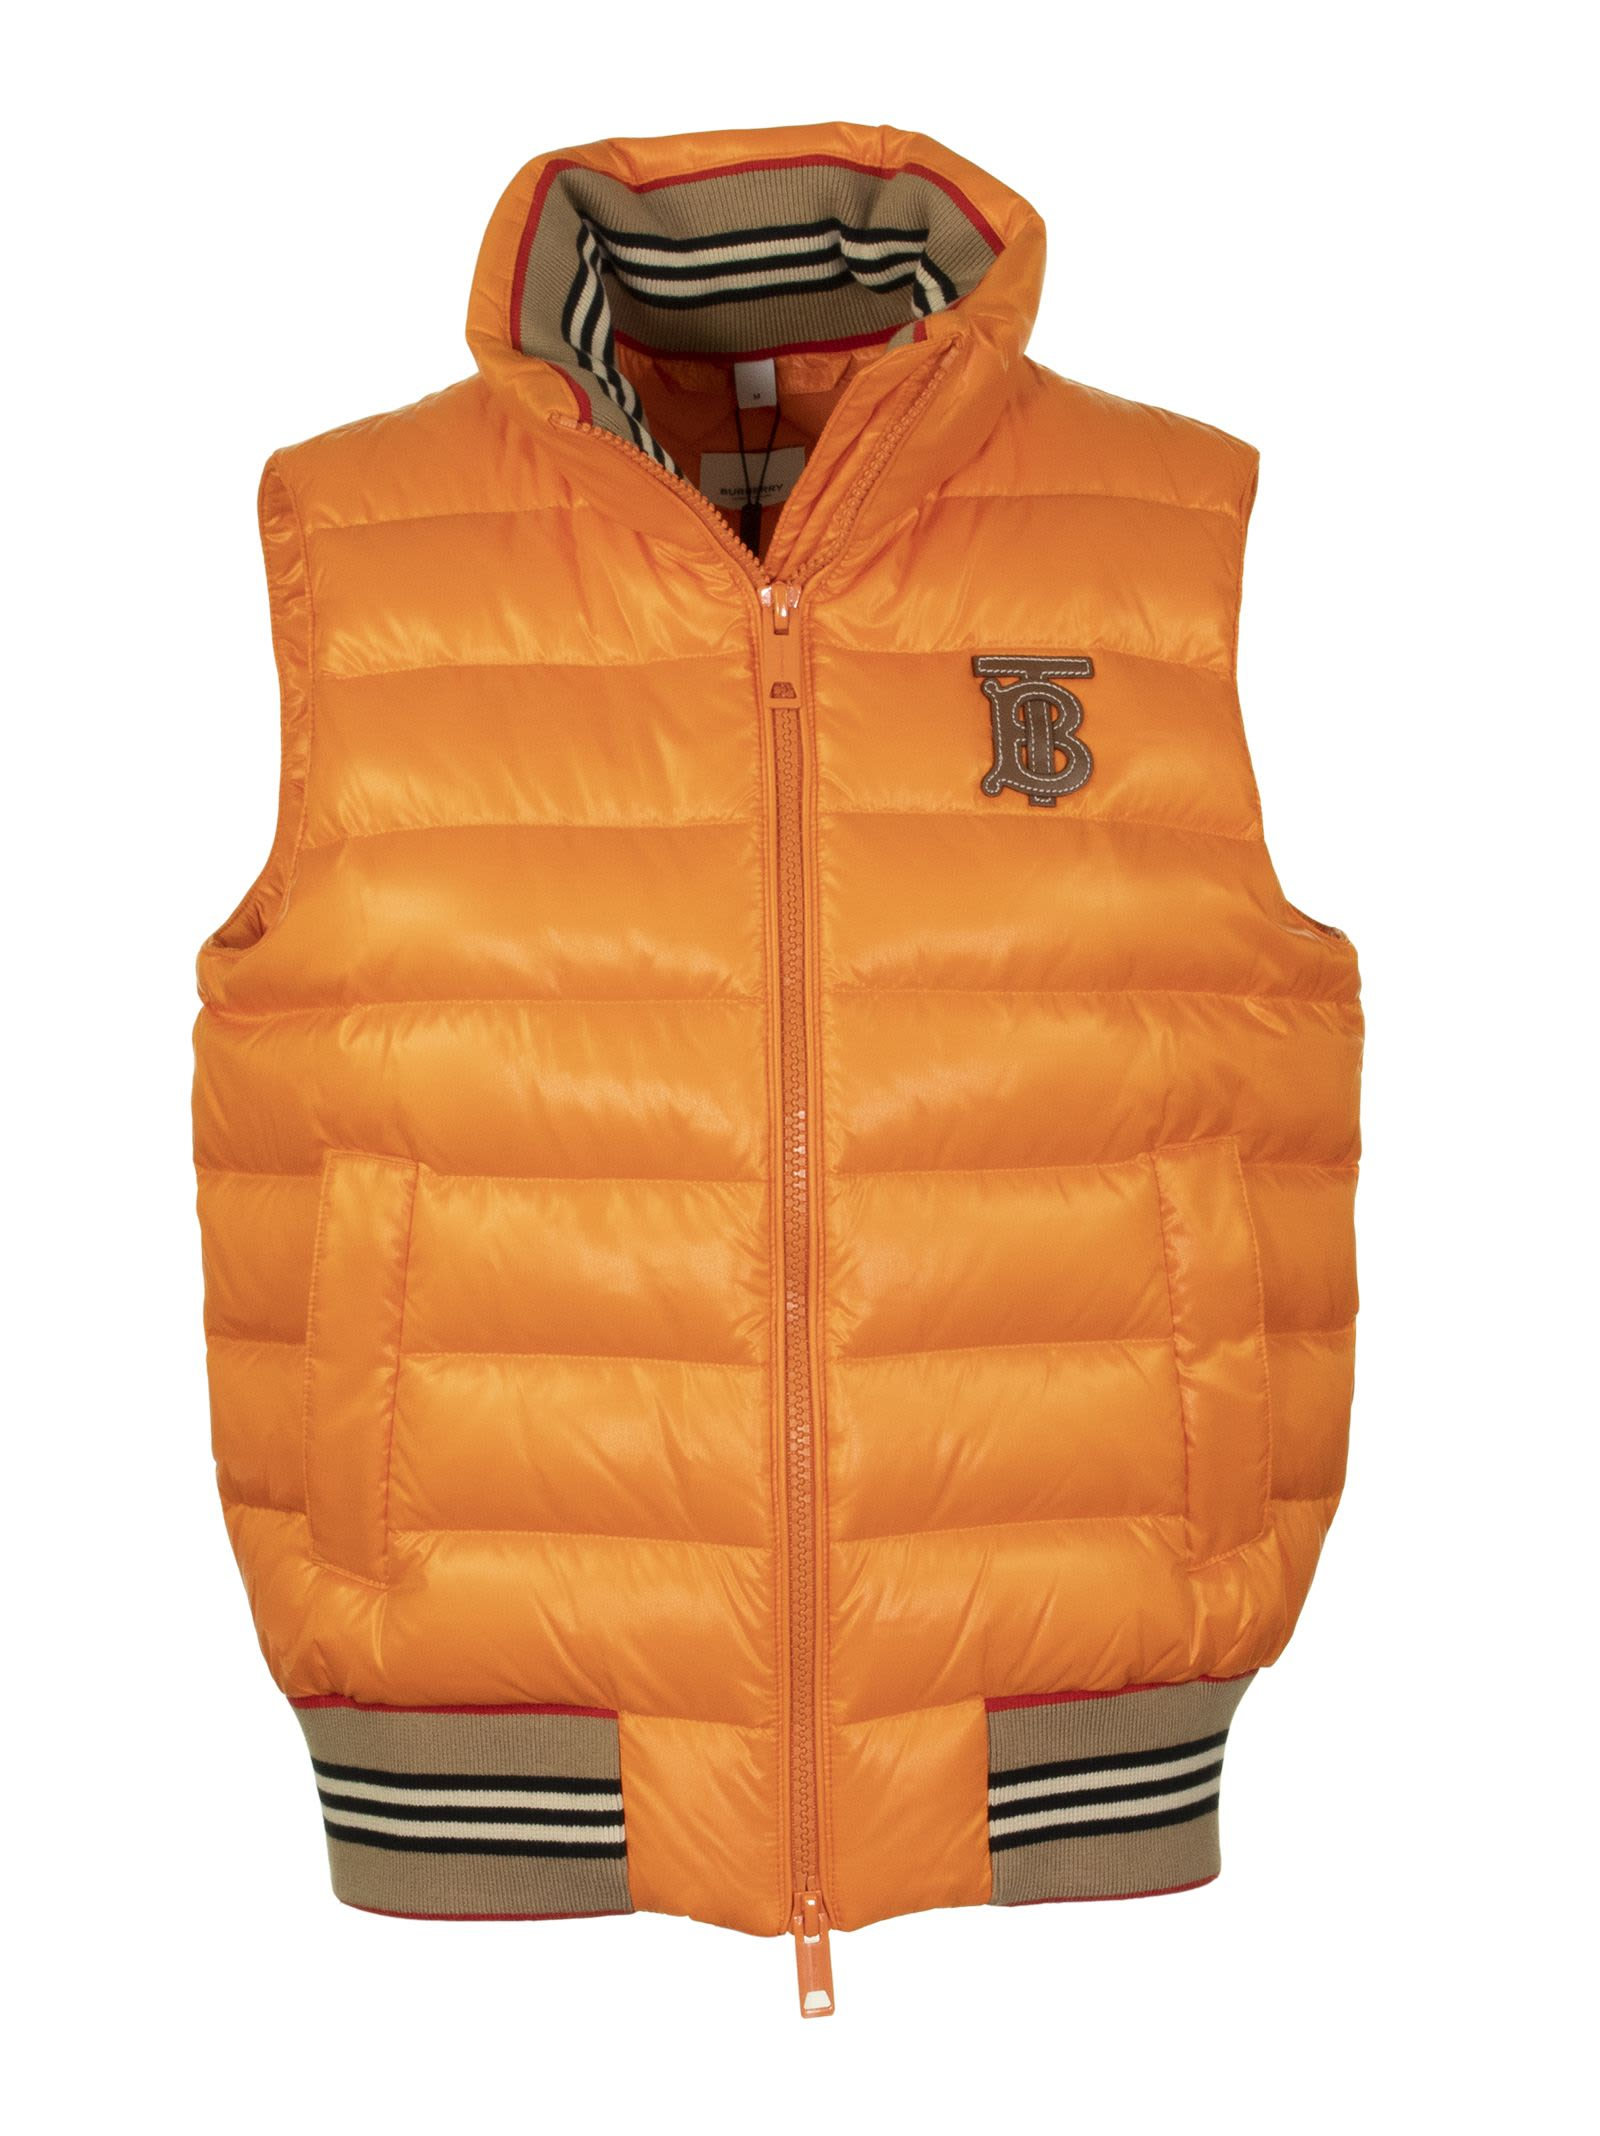 Photo of  Burberry Hessle Orange- shop Burberry jackets online sales